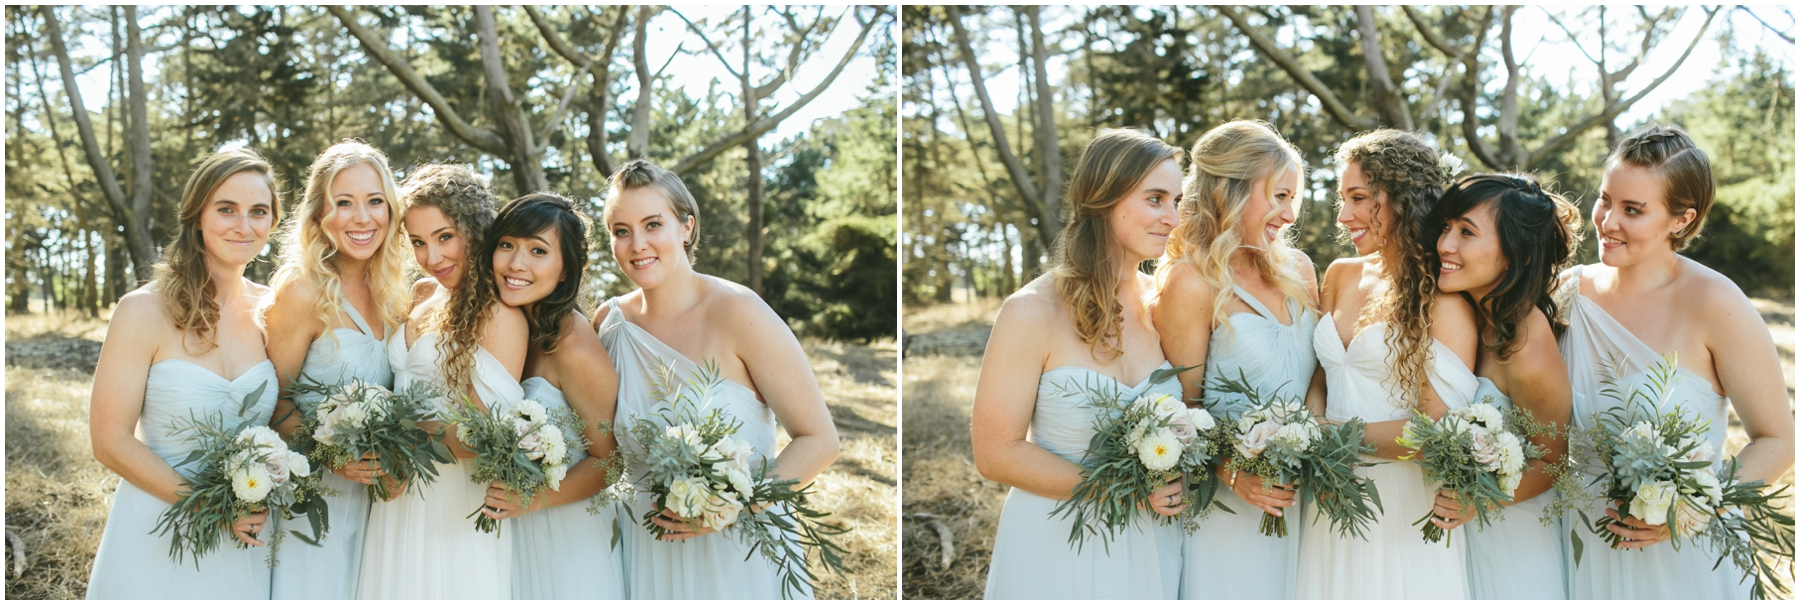 Emily+Paul-WEDDING_KellyBoitanoPhotography_0066